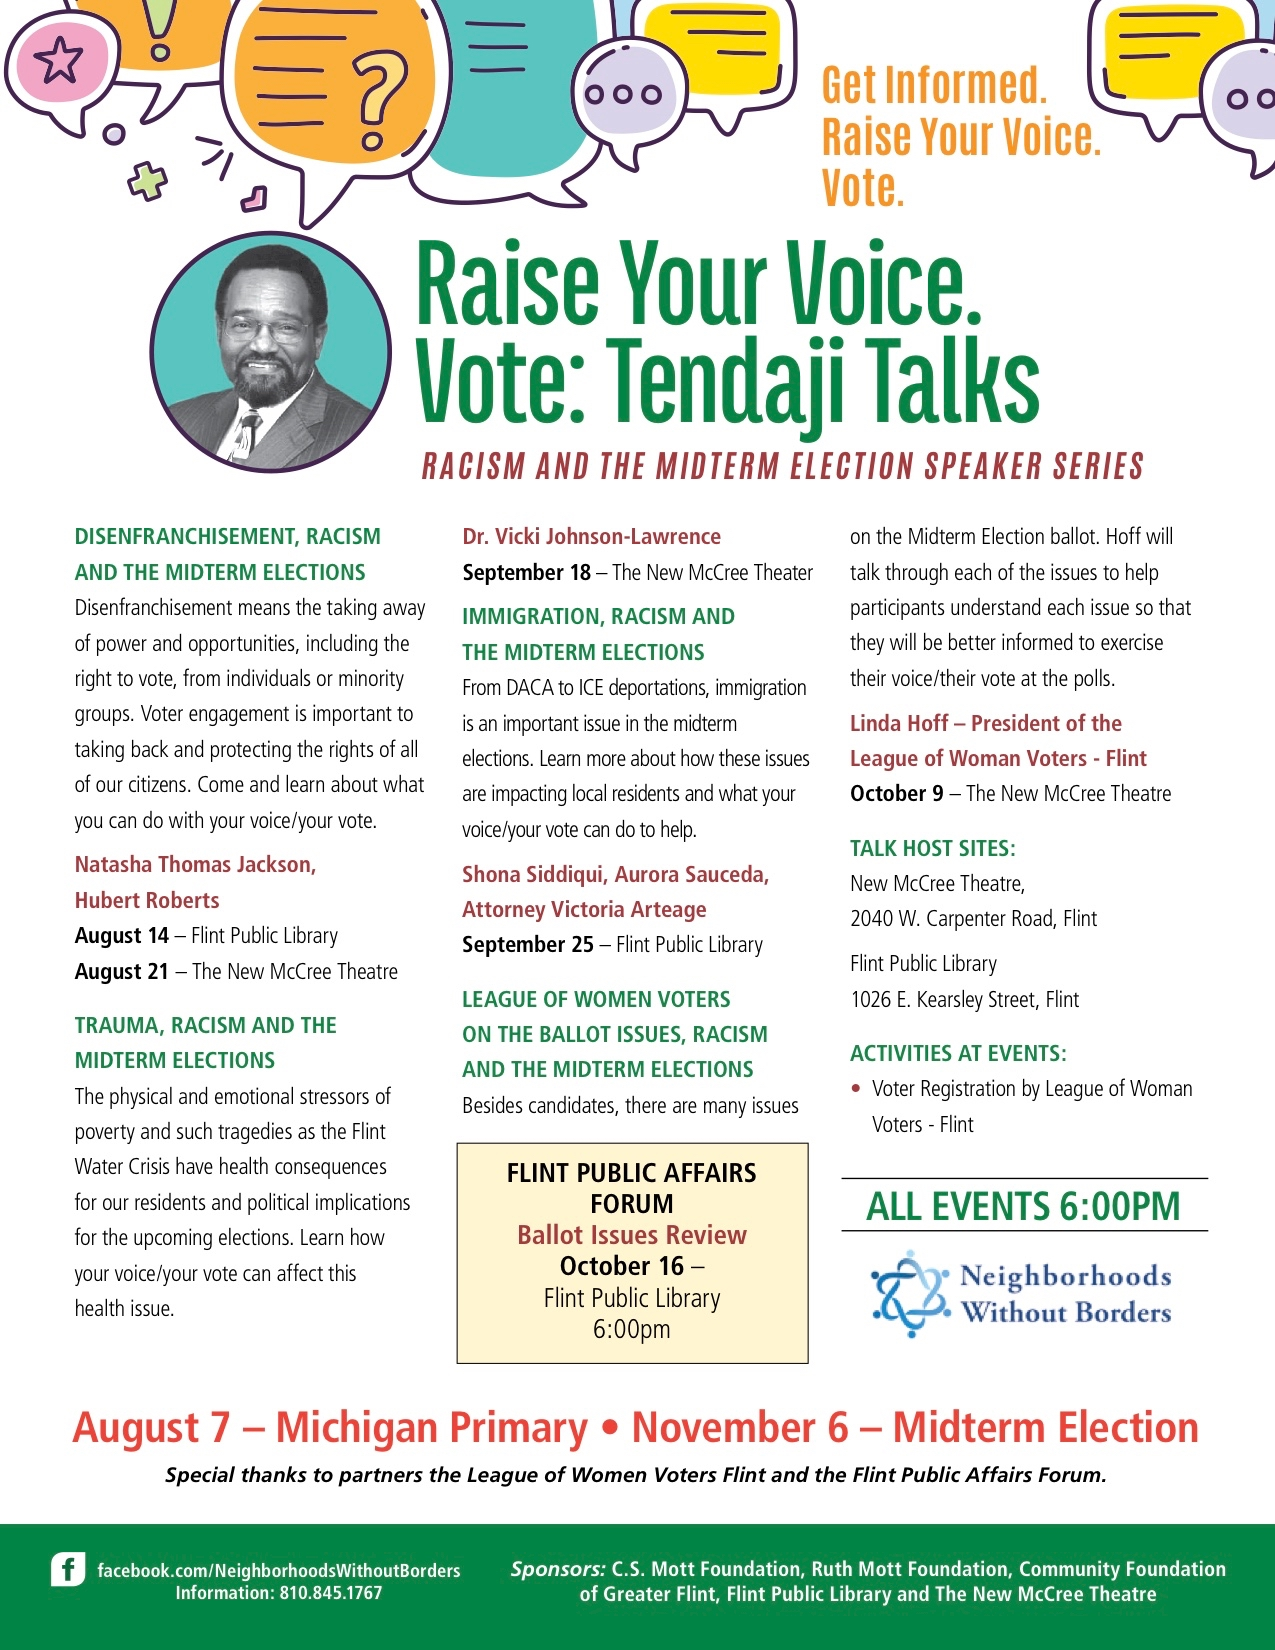 Disenfranchisement, Racism and the Midterm Elections - Tendaji Talks @ The New McCree Theatre | Flint | Michigan | United States